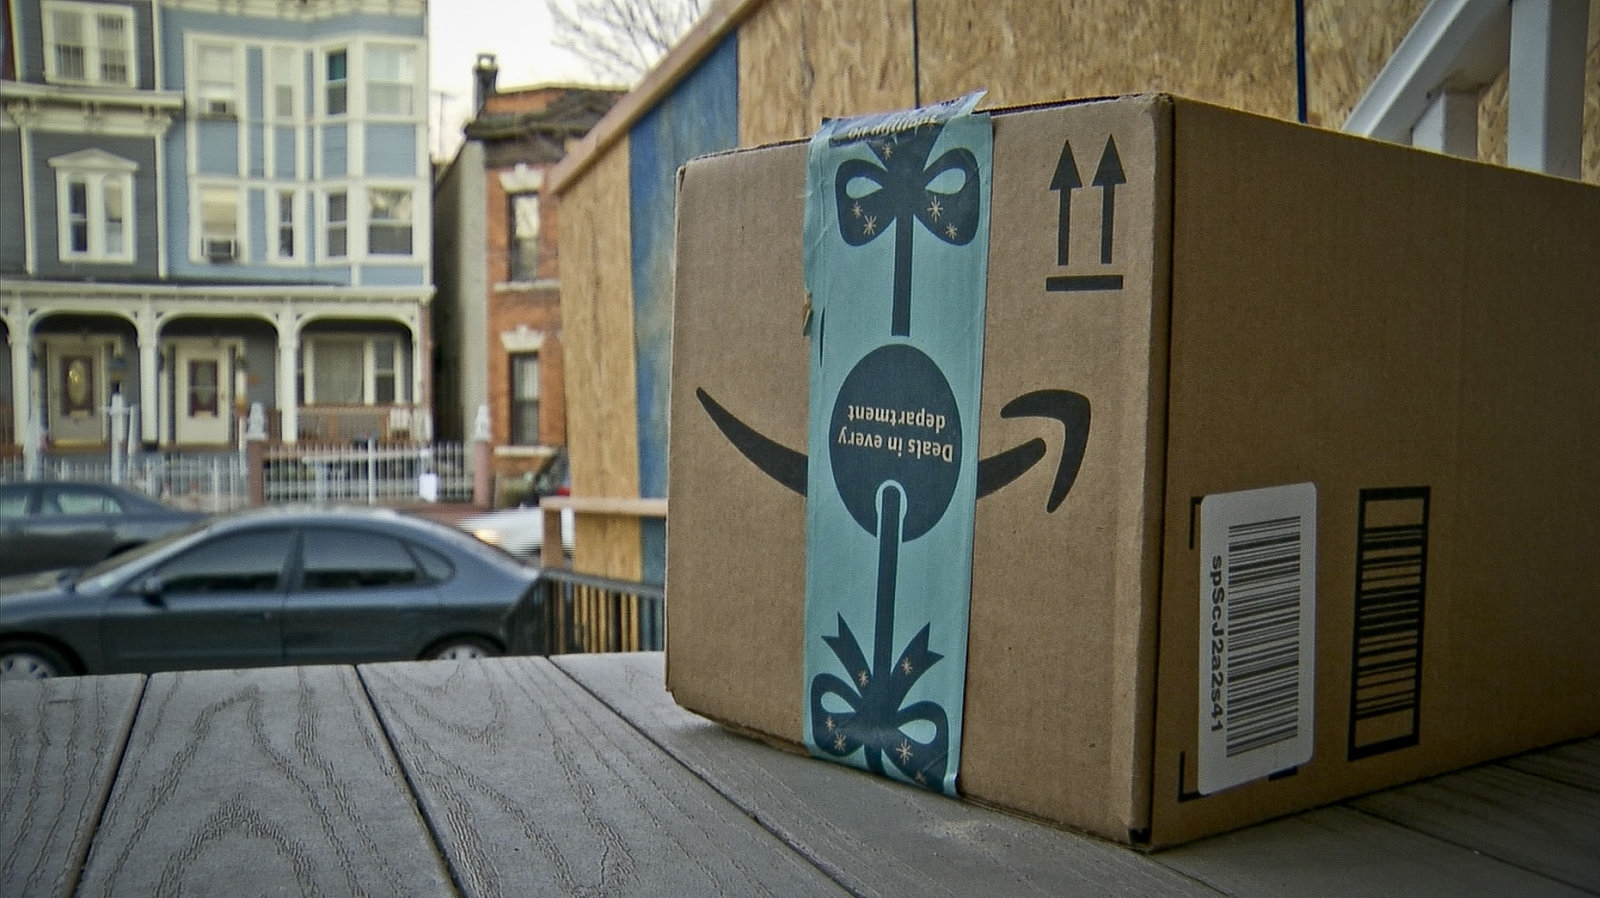 Fast delivery may negate the environmental benefits of online shopping | DeviceDaily.com